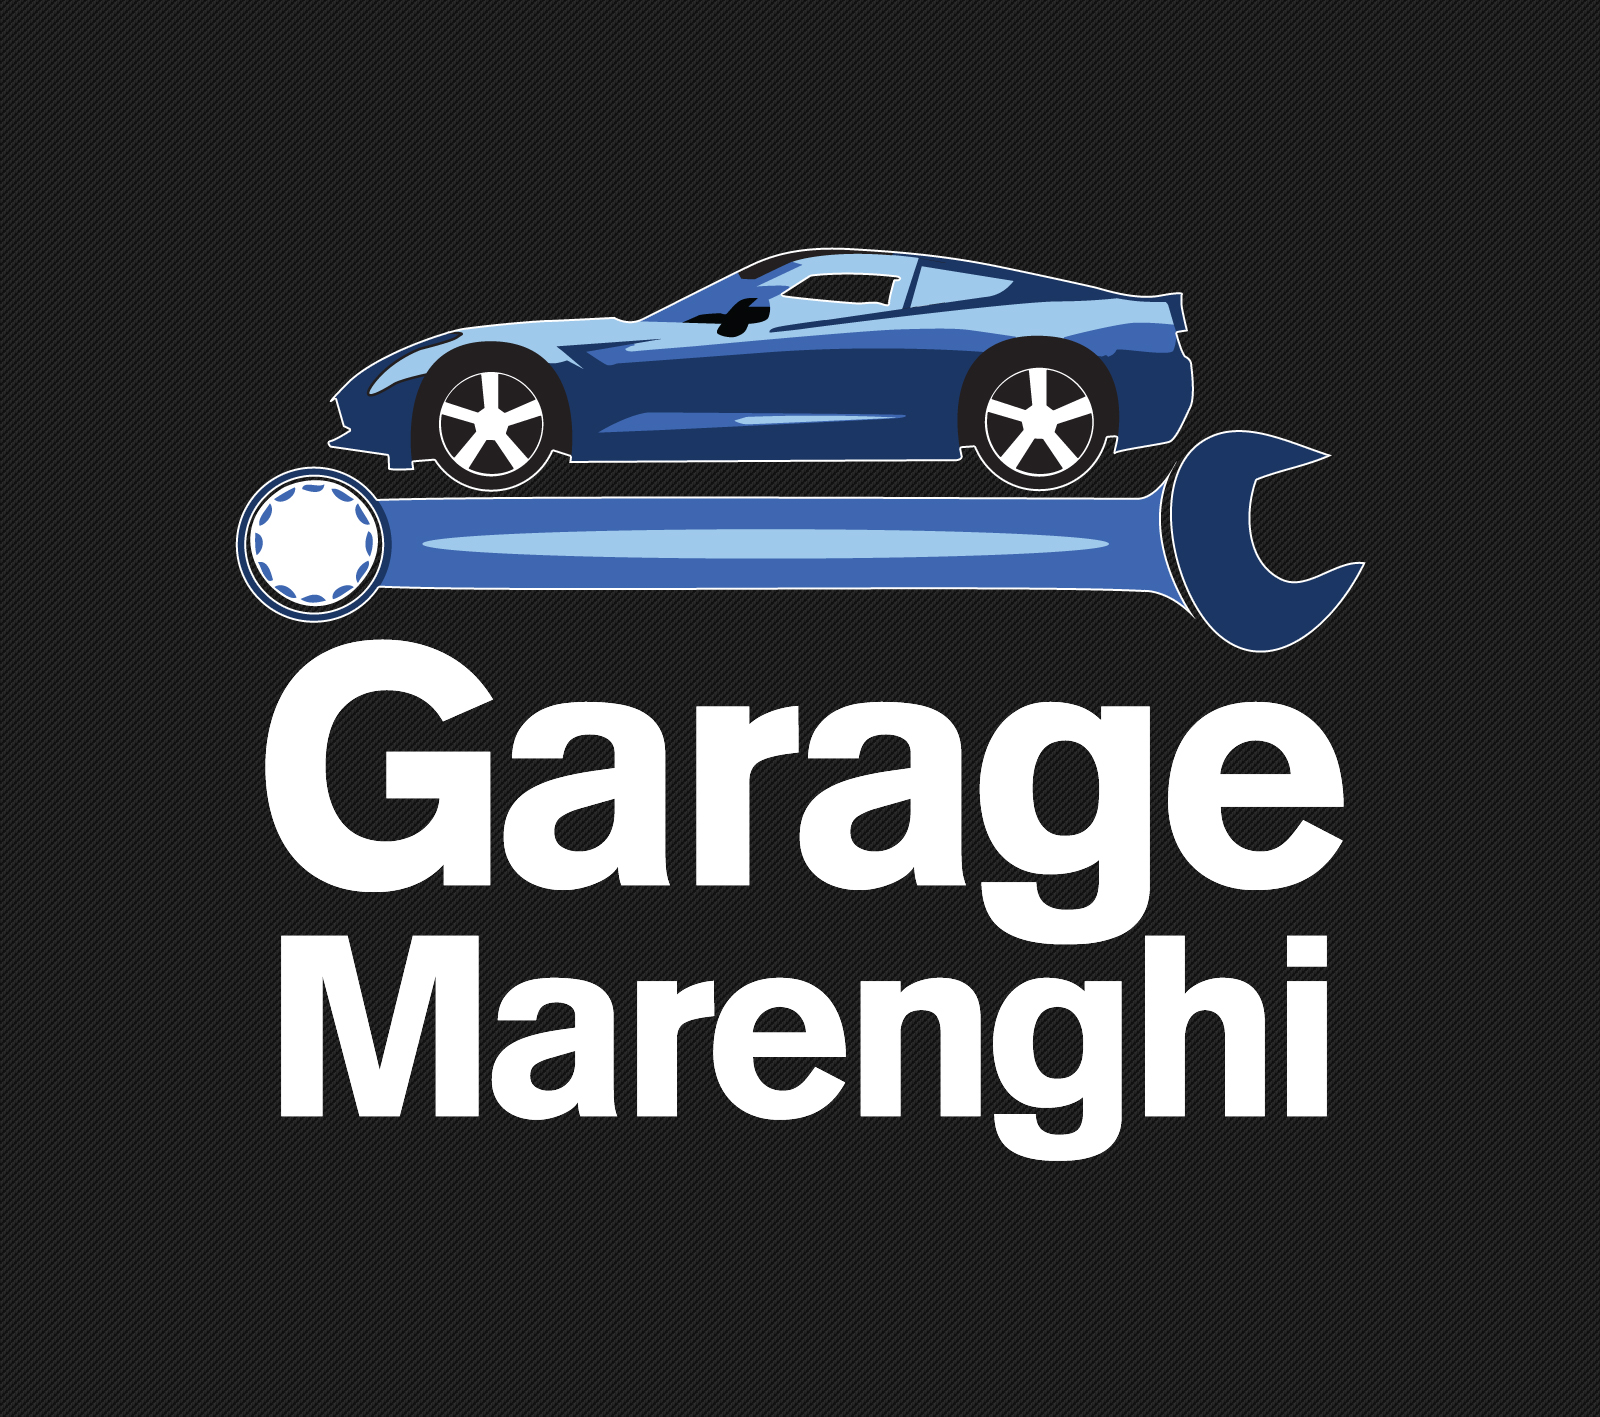 Garage Marenghi